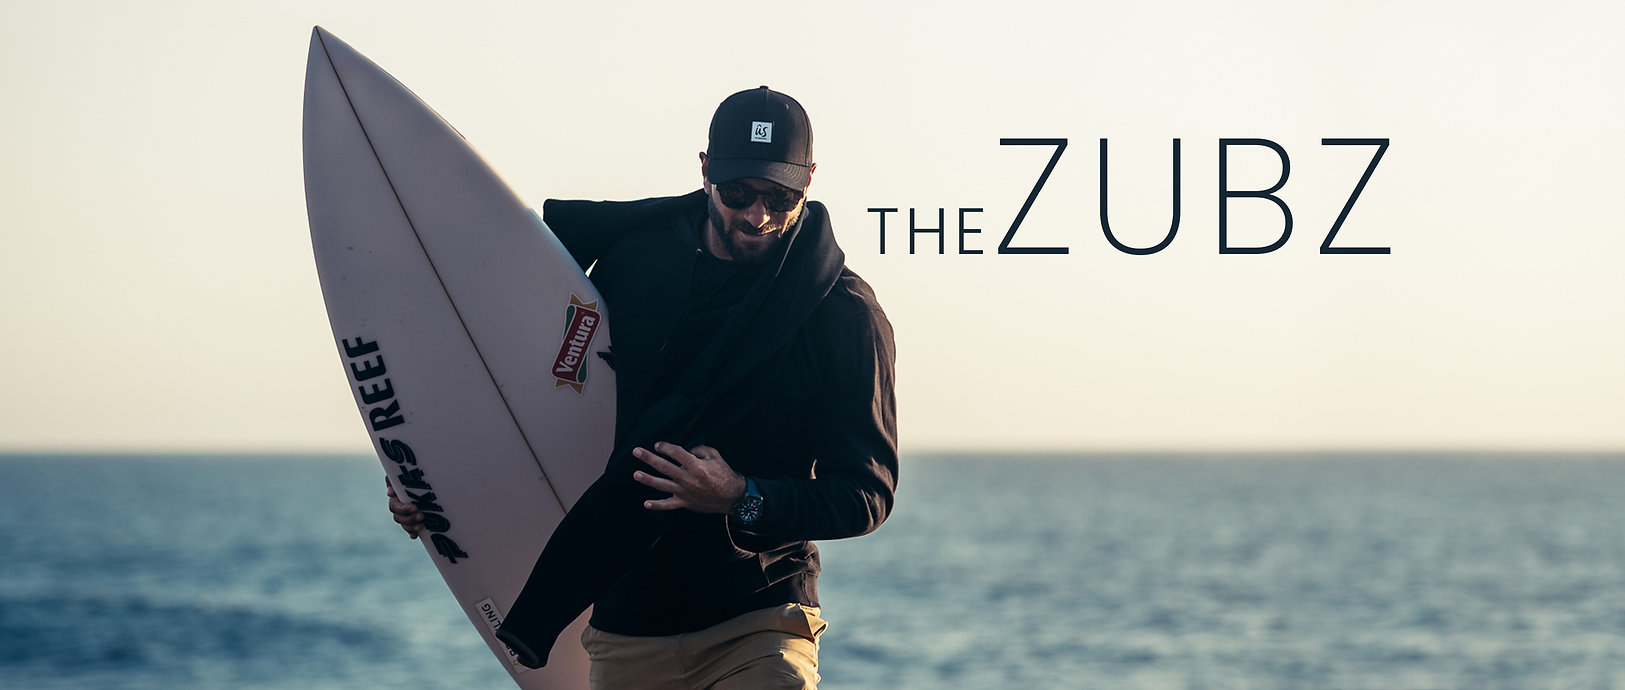 the-zubz-cap-us-the-movement-roby-damico